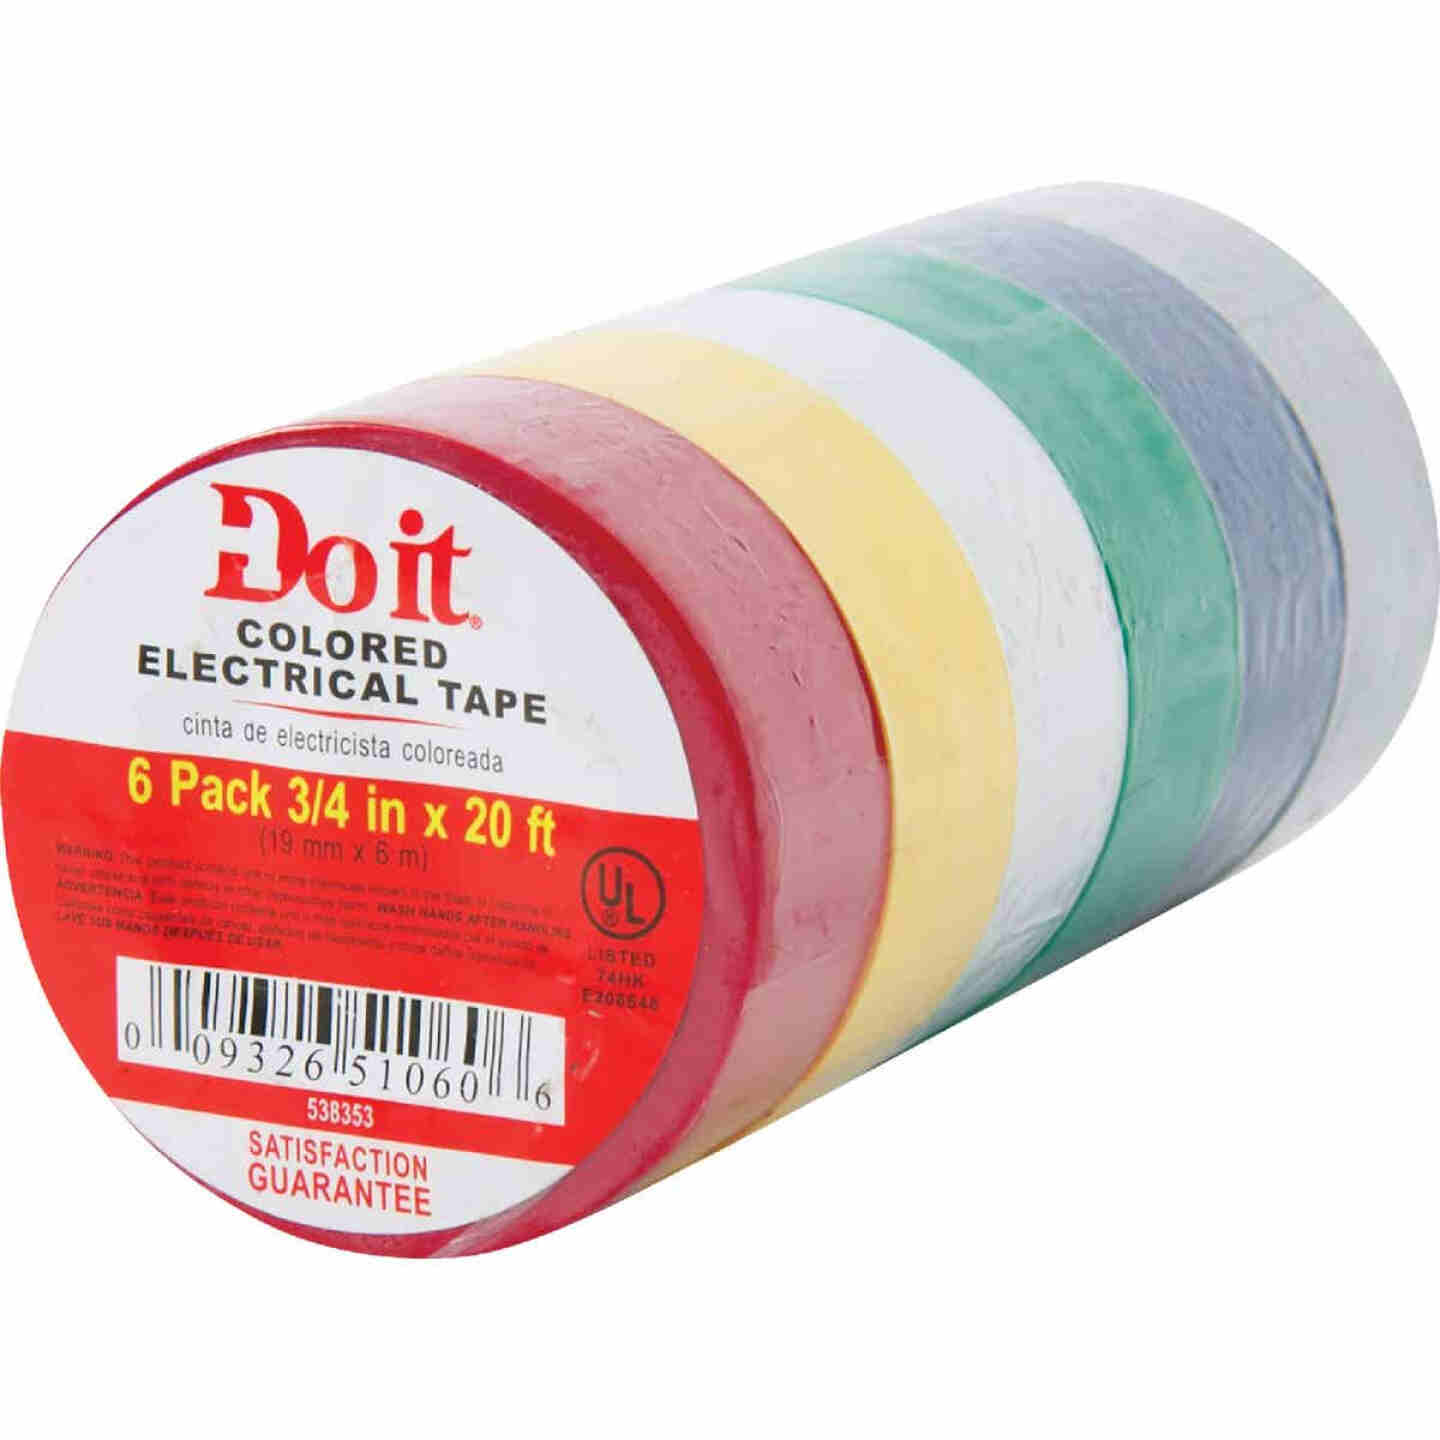 Do it General Purpose 3/4 In. x 20 Ft. Assorted Color Electrical Tape, (6-Pack) Image 2